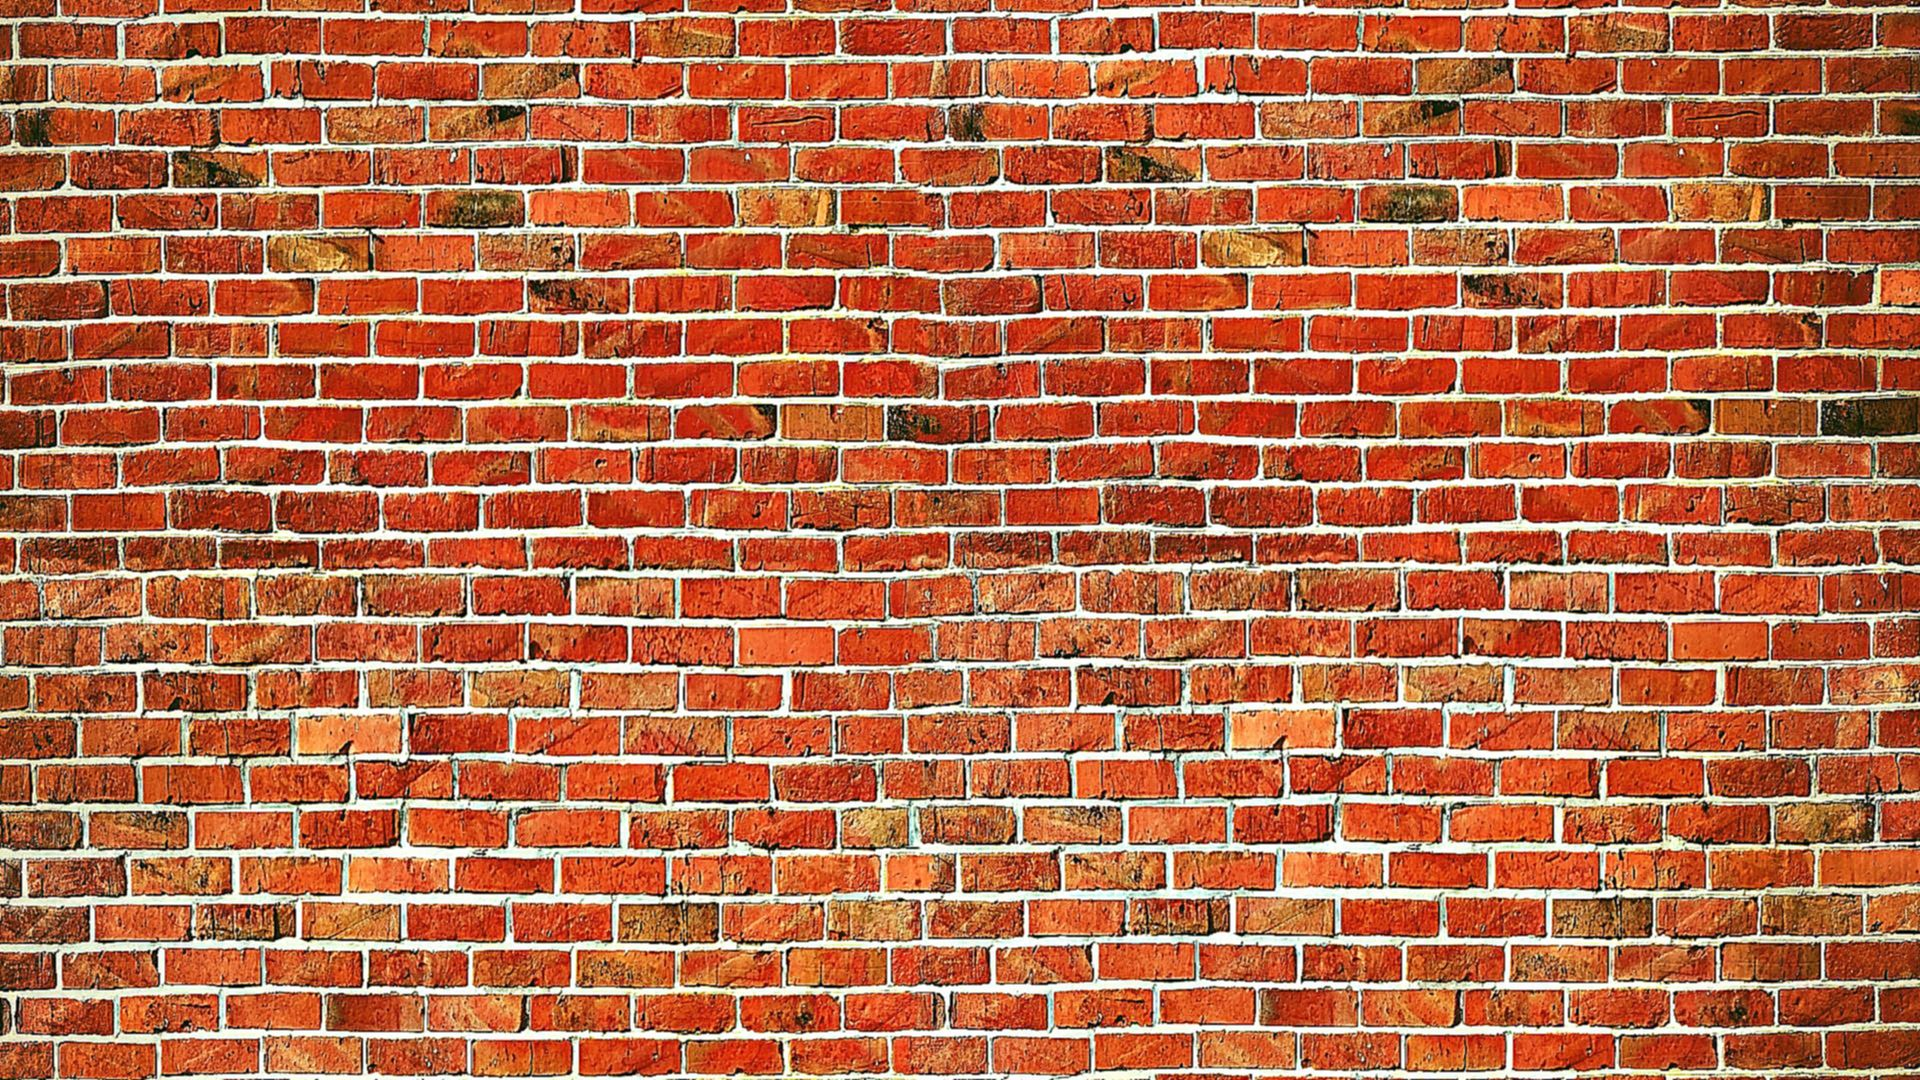 bricks background wallpapers